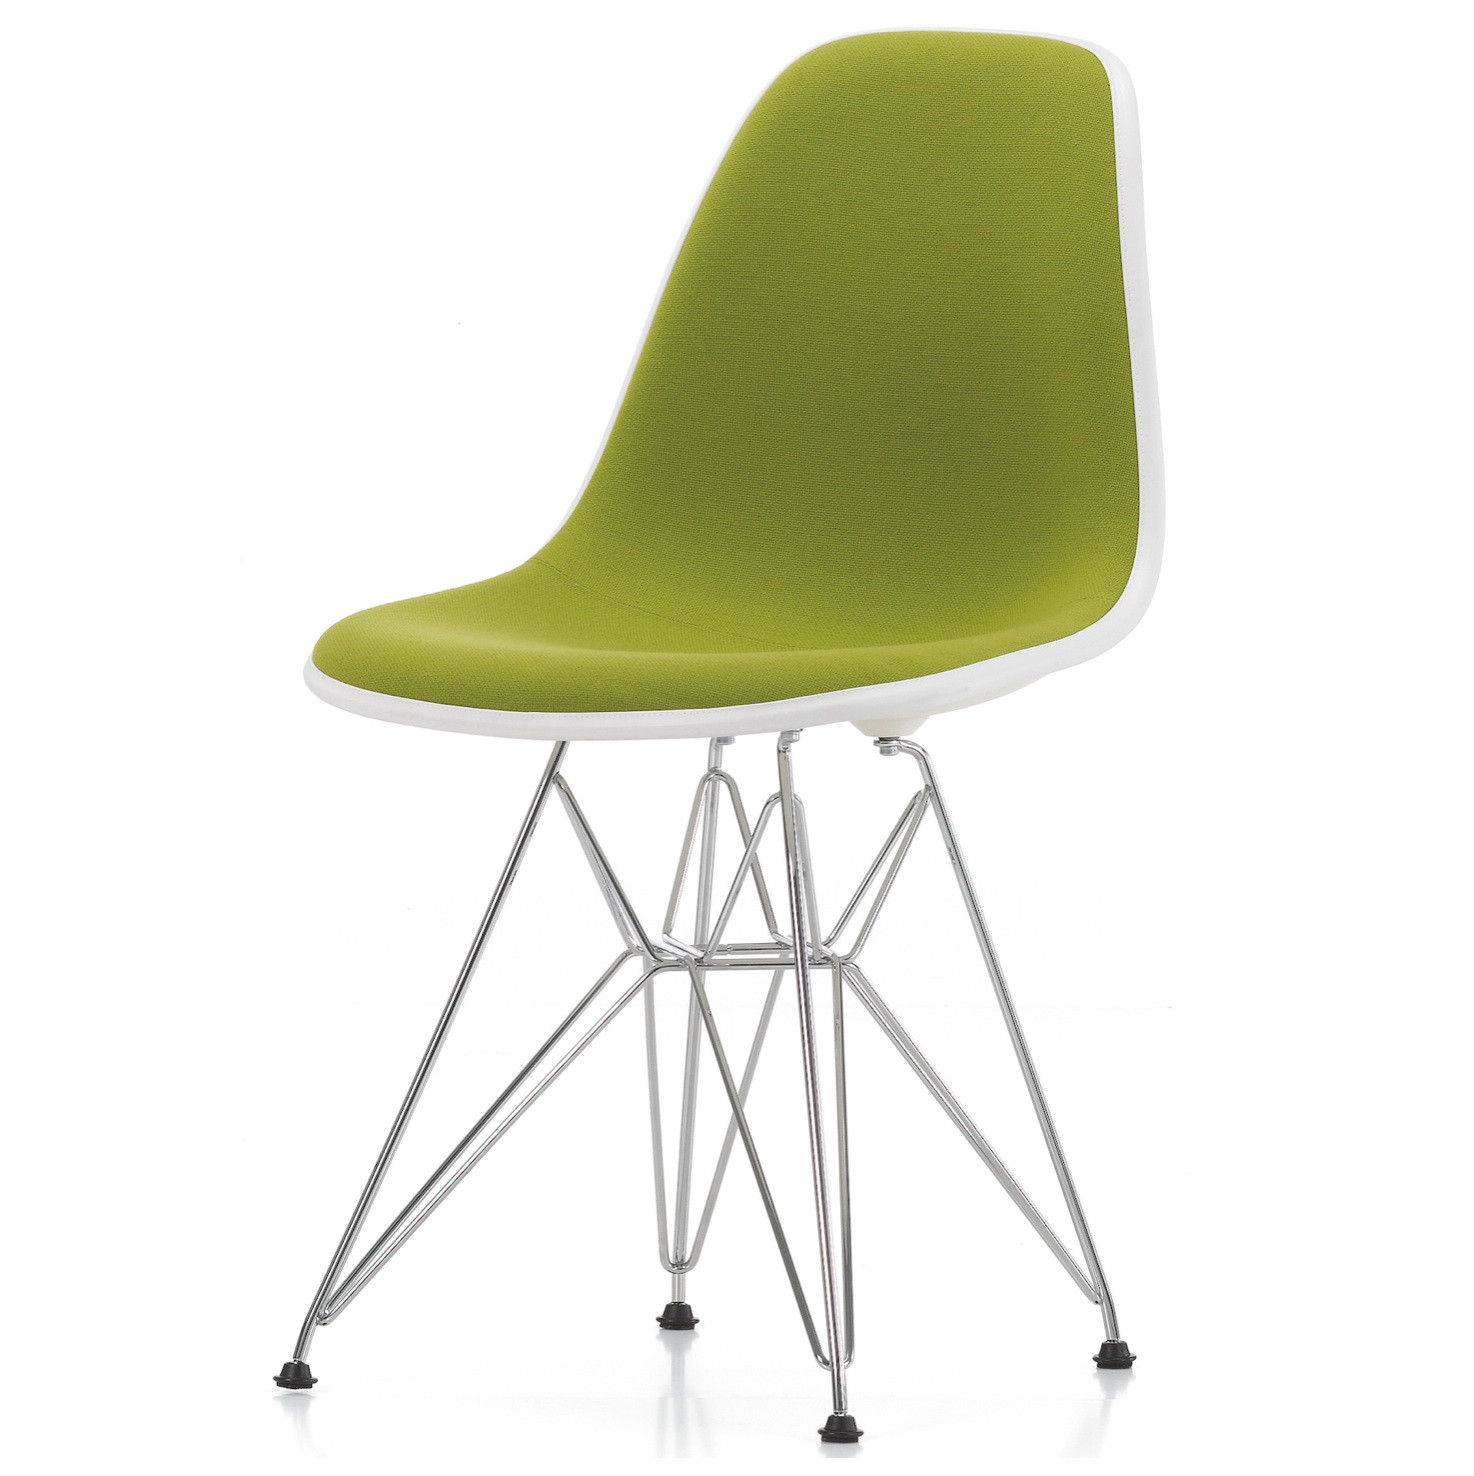 Vitra Eames Side Chair Vitra Eames Plastic Side Chair Dsr Bekleed